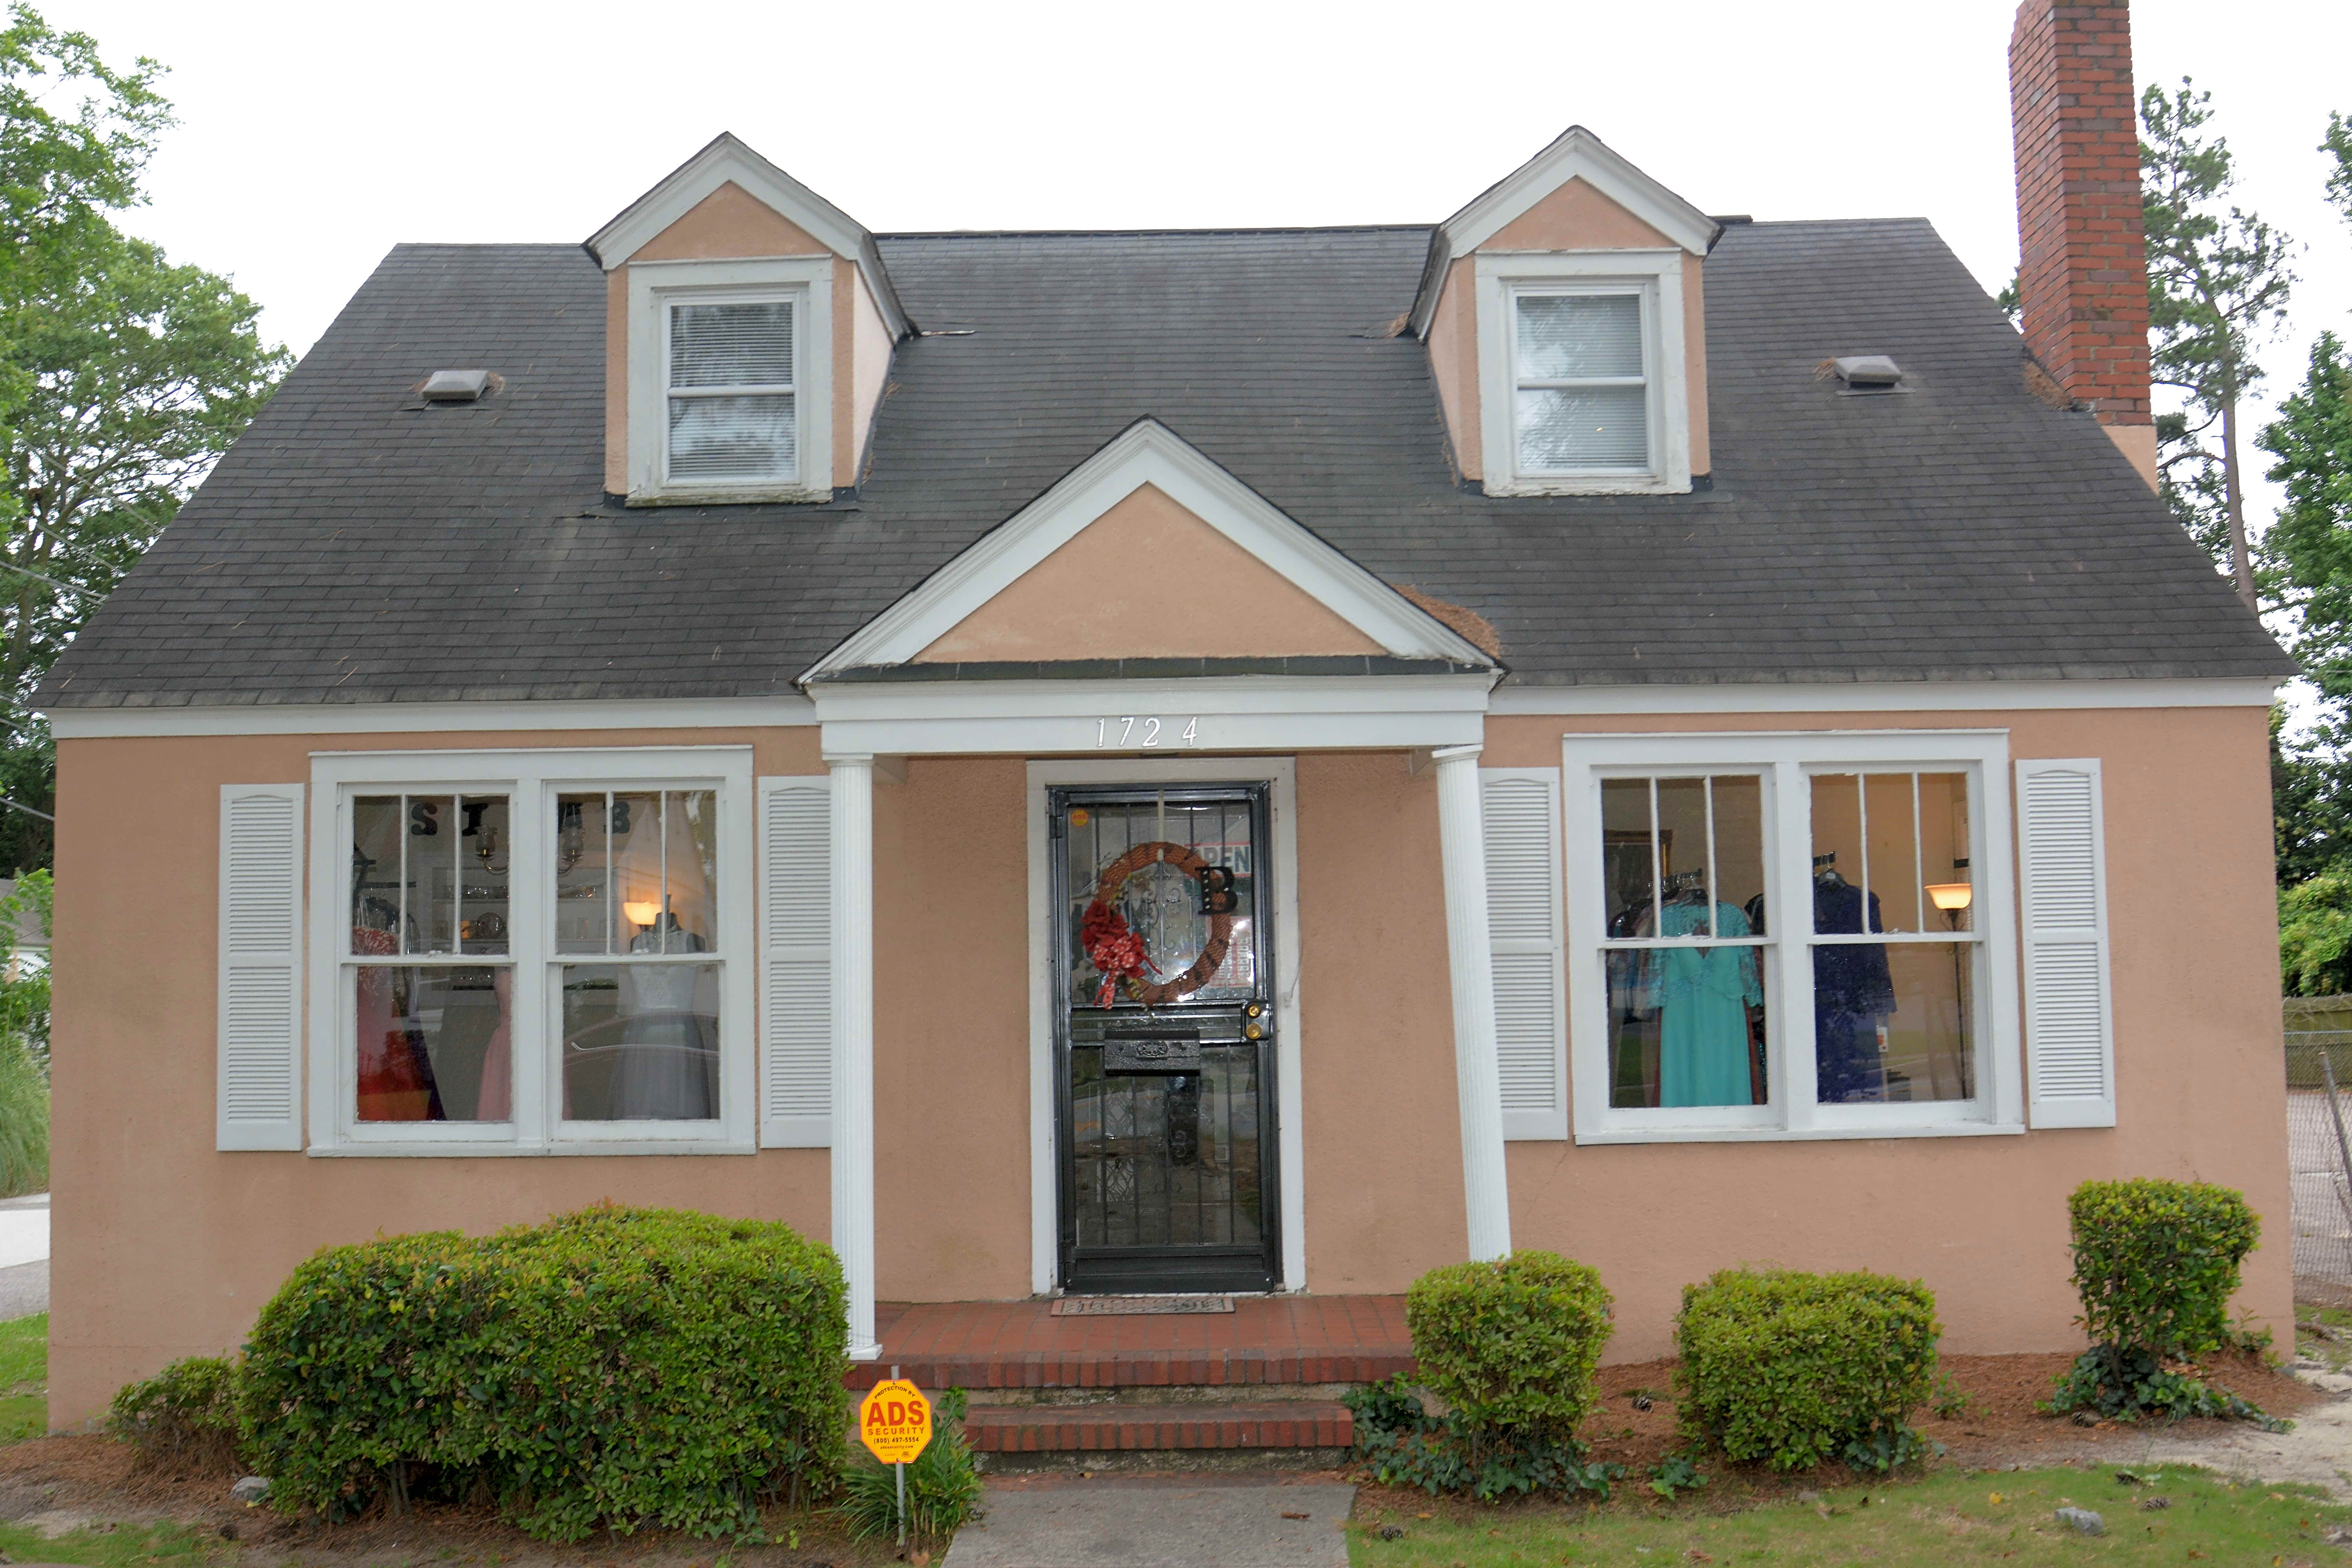 augusta houses for rent apartments in augusta georgia